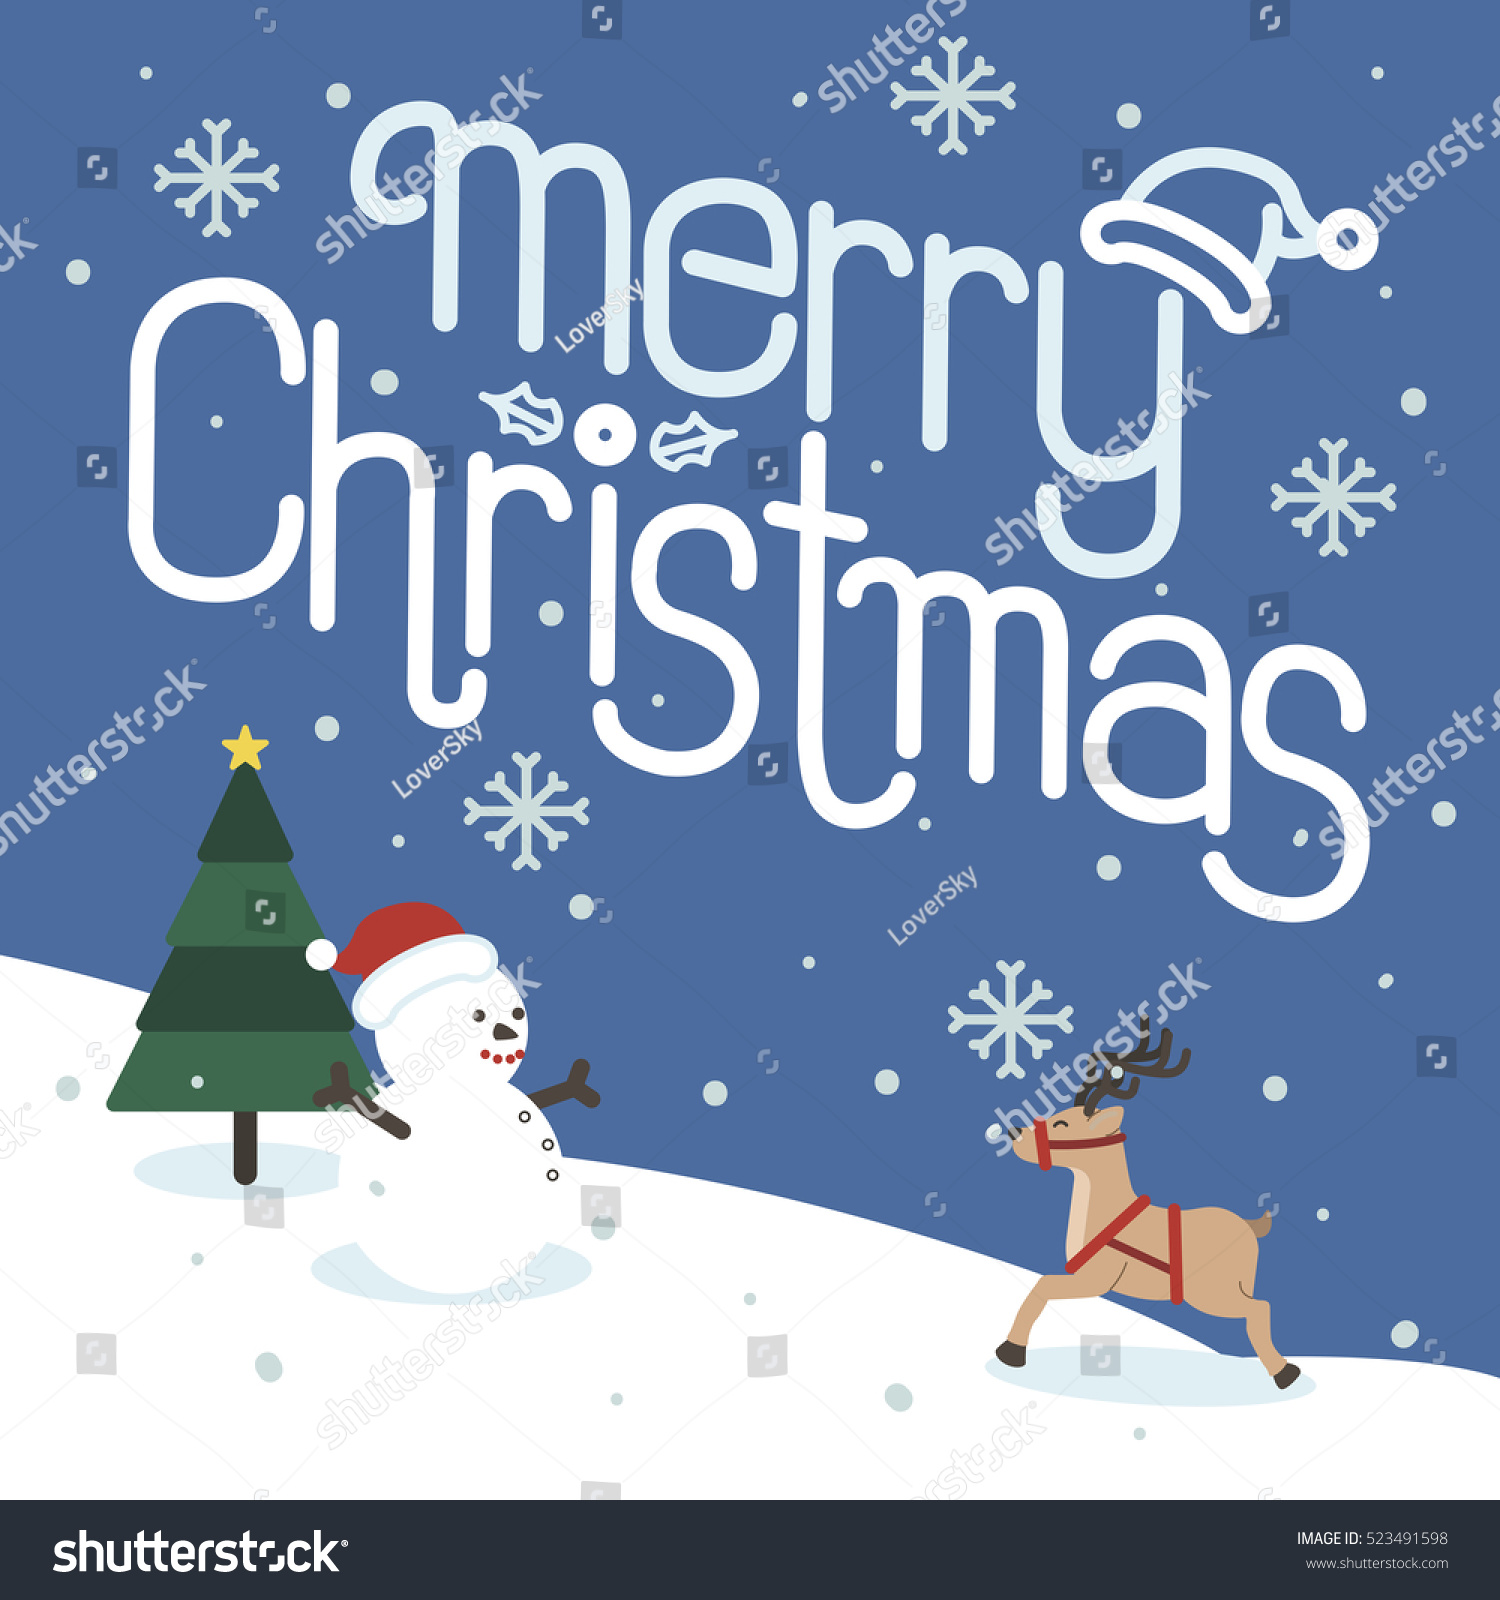 Merry Christmas Happy New Year Christmas Stock Illustration